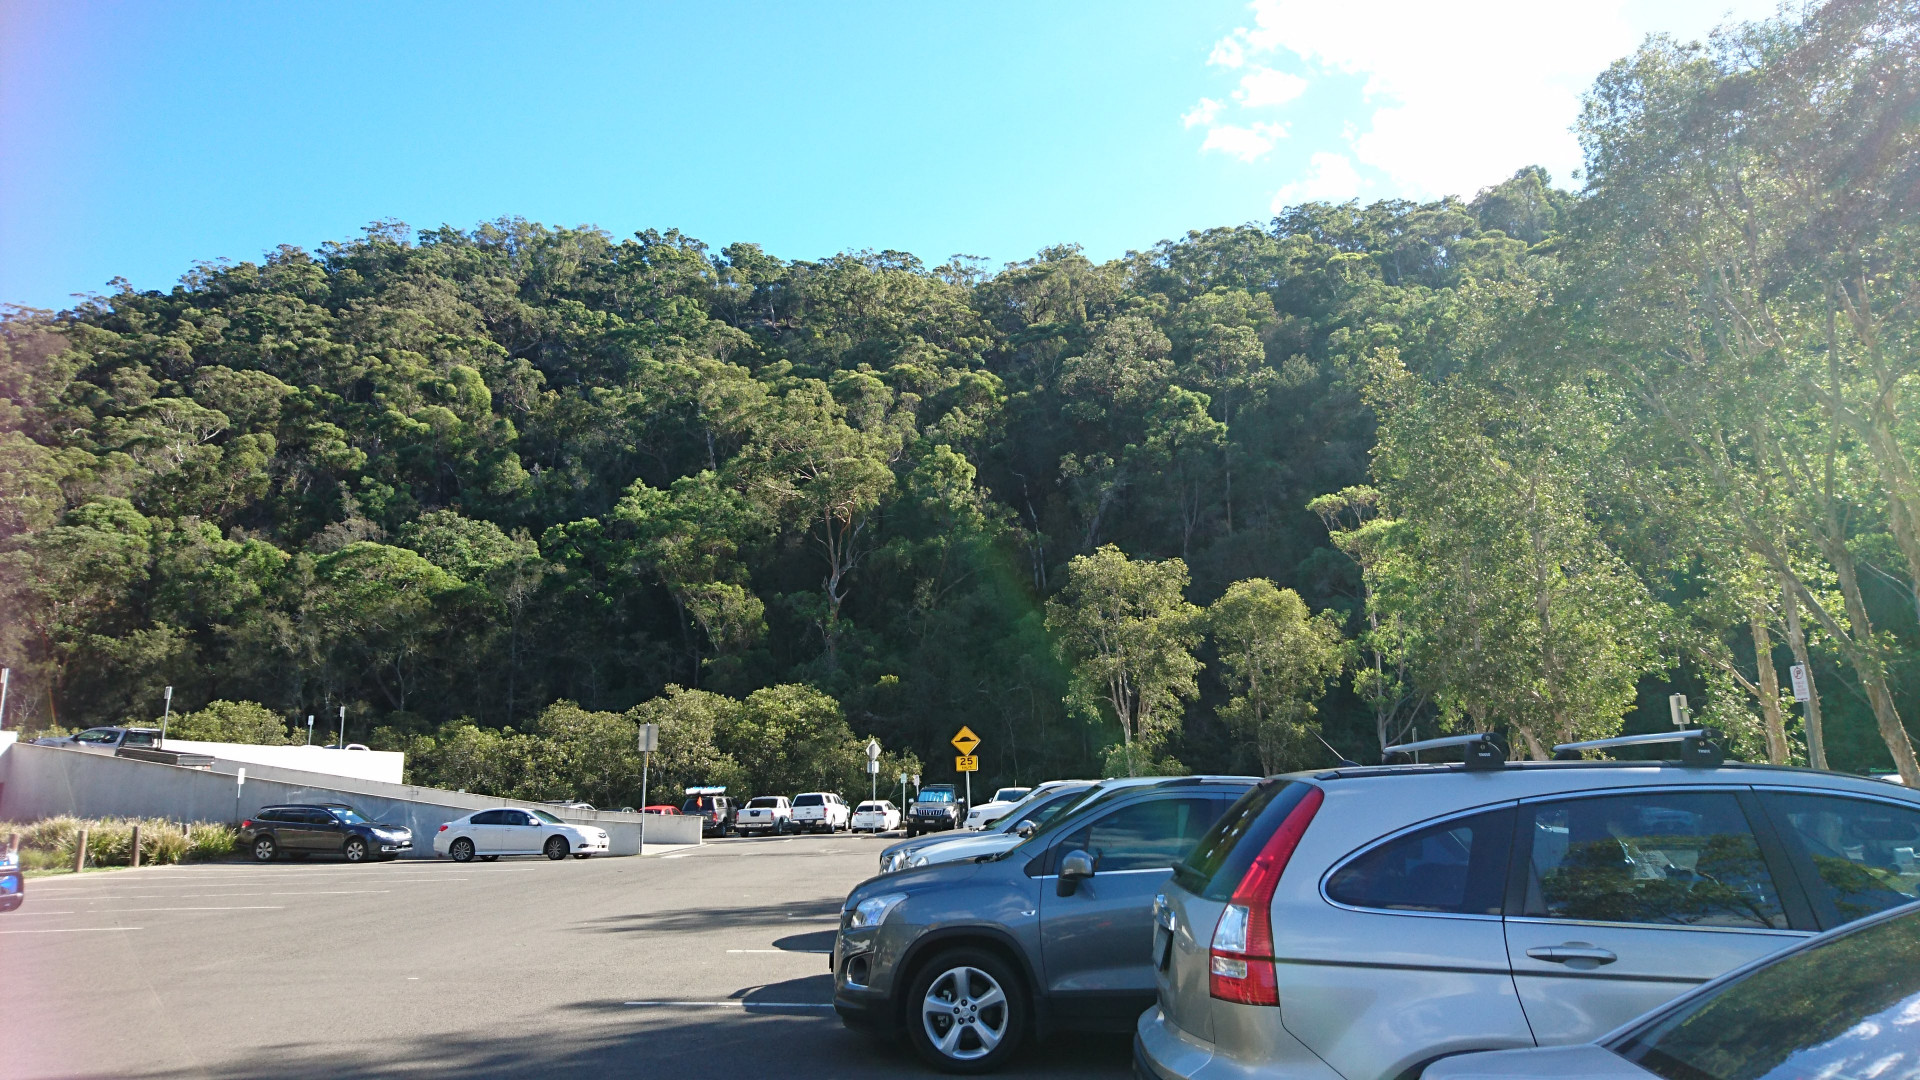 Car parking at Berowra Waters Marina